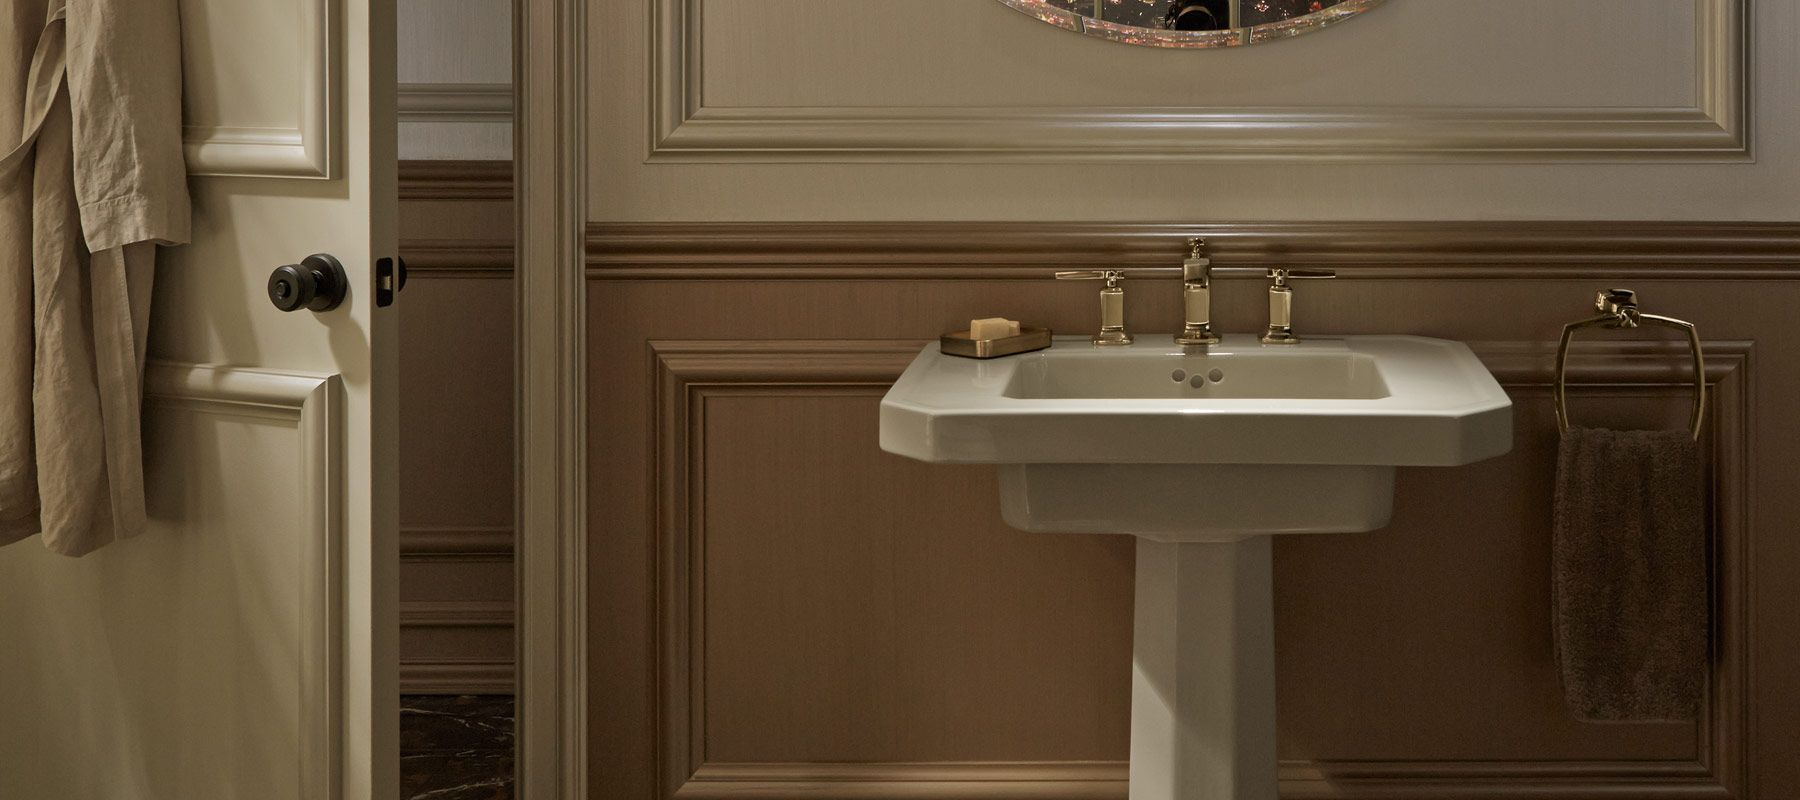 Pedestal Bathroom Sinks KOHLER